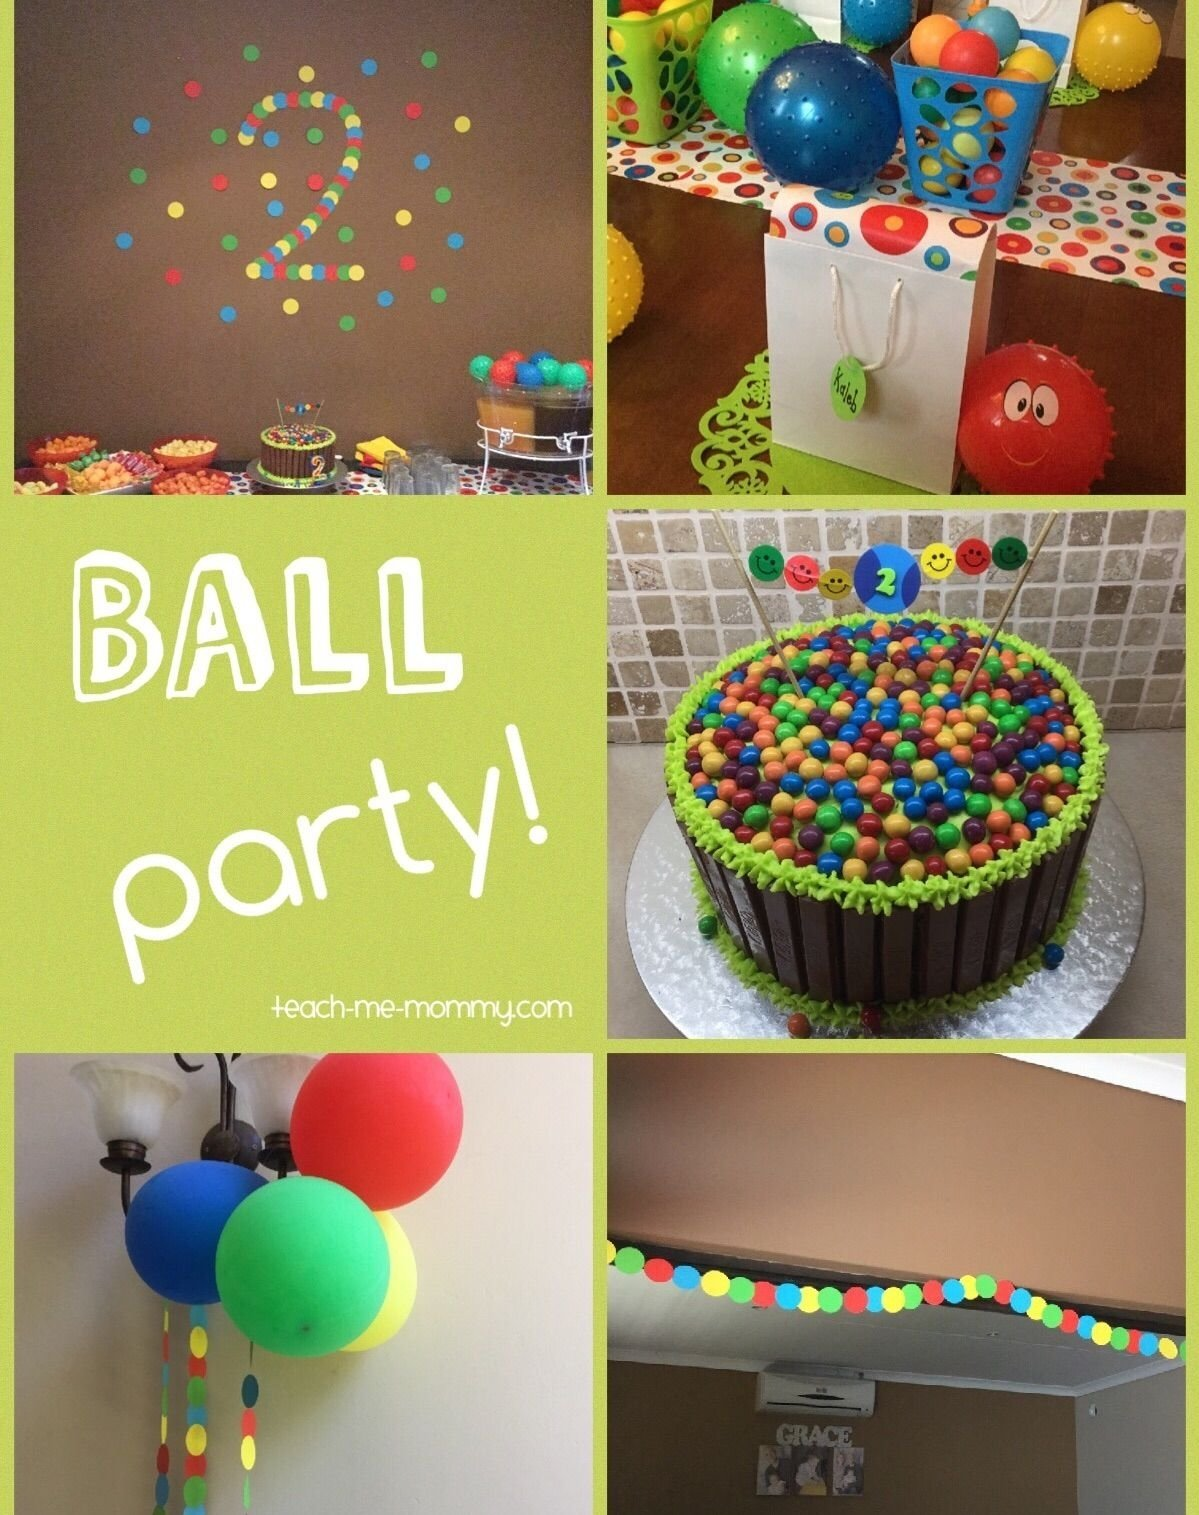 10 Great 2 Yr Old Birthday Party Ideas ball themed party for a 2 year old themed parties birthdays and 6 2020